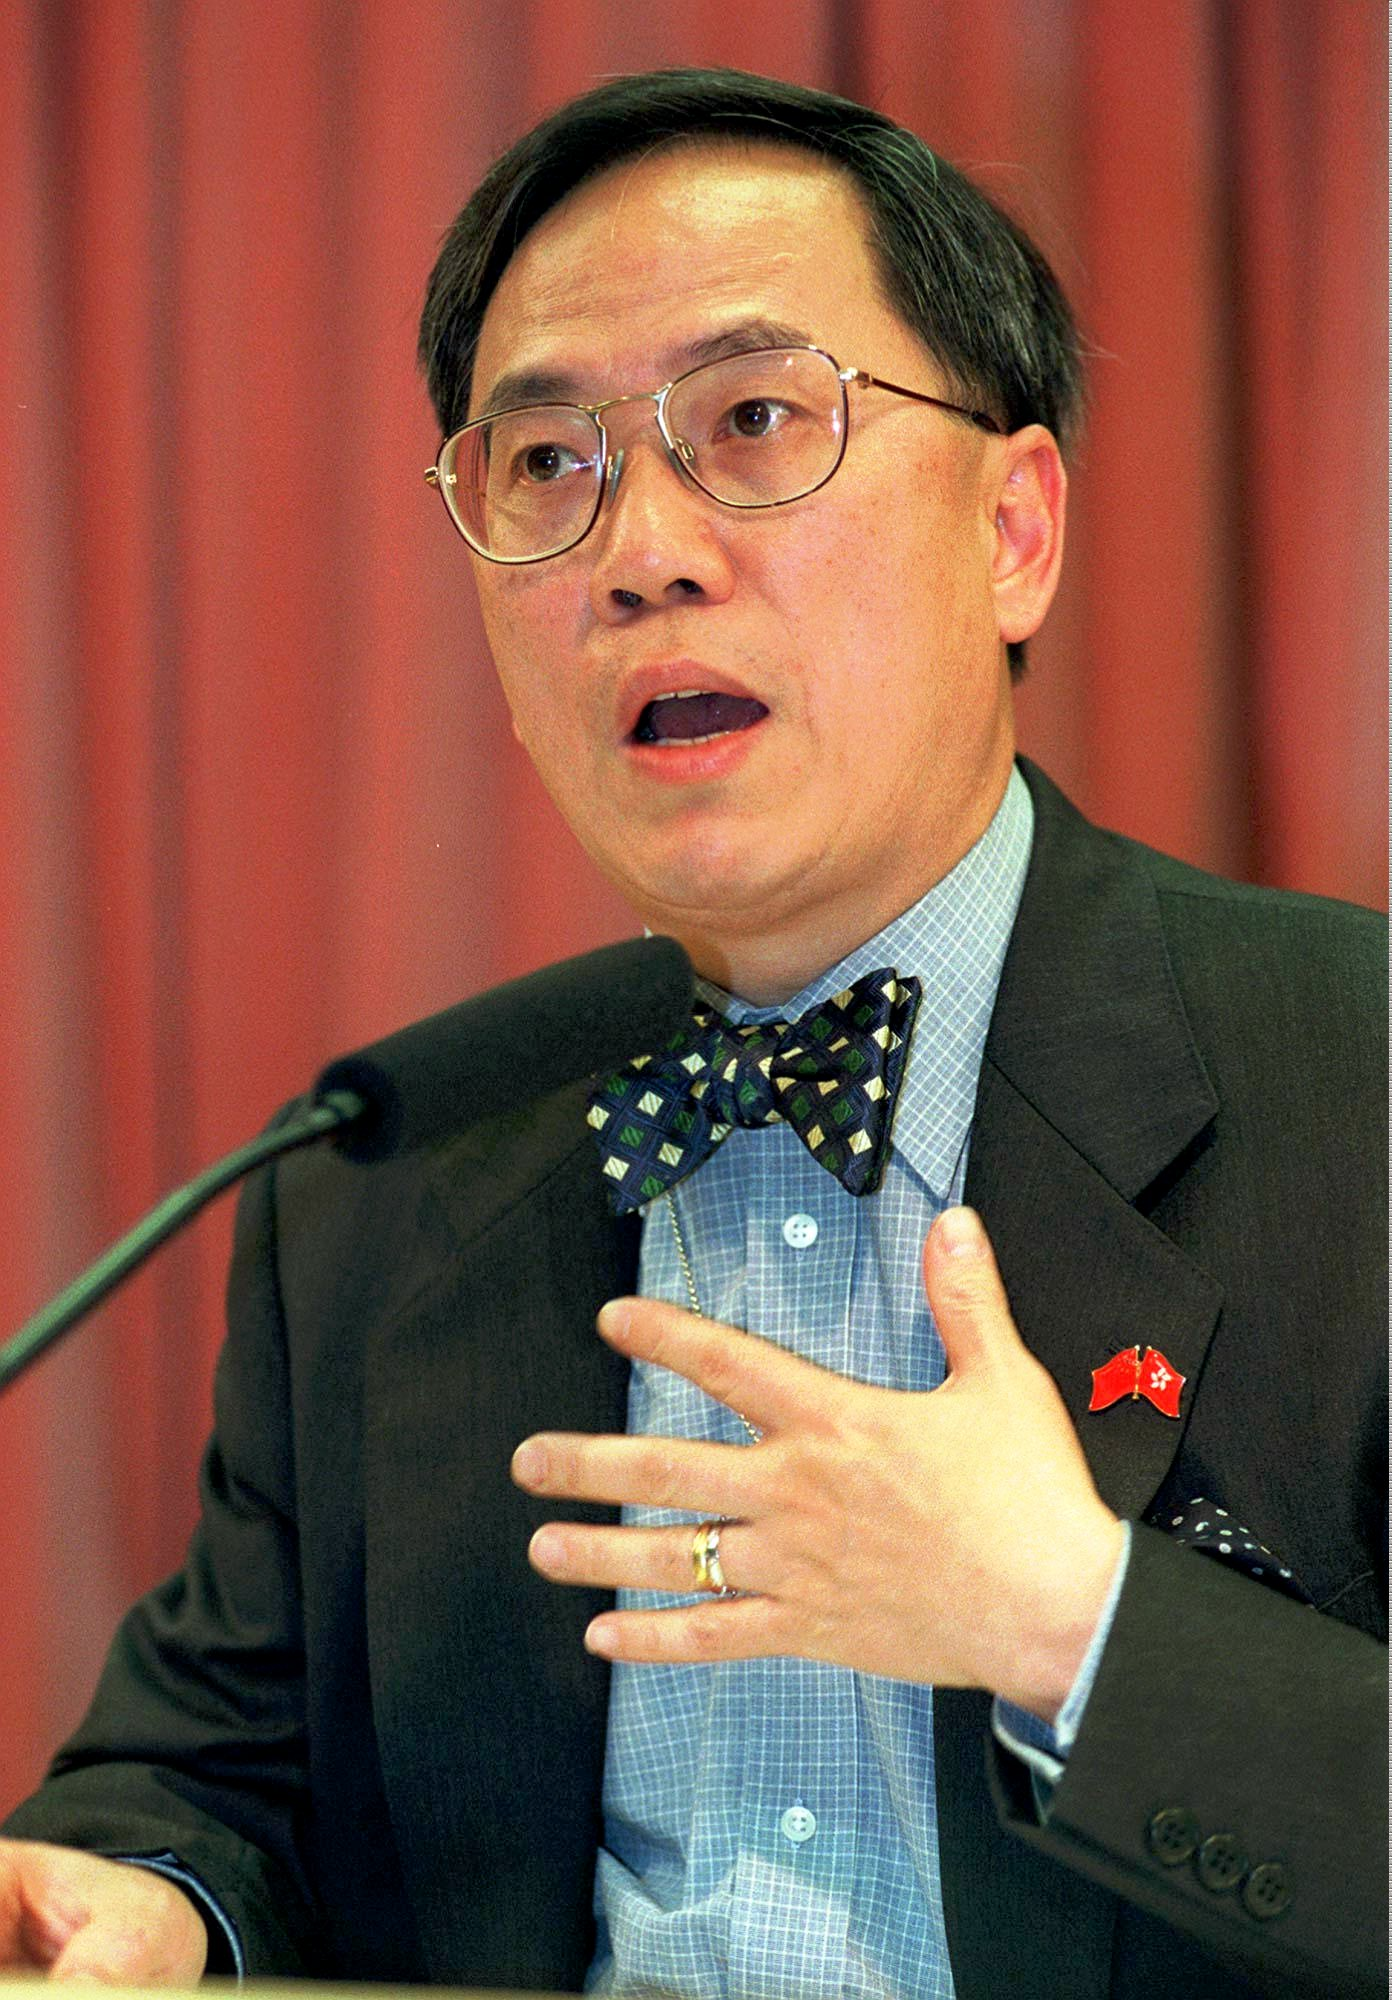 Hong Kong's Financial Secretary Donald Tsang gestures during a press conference Friday, May 29, 1998 in Hong Kong. Tsang said that Hong Kong's economy contracted for the first time in almost 13 years in the first quarter of Asia's financial crisis.